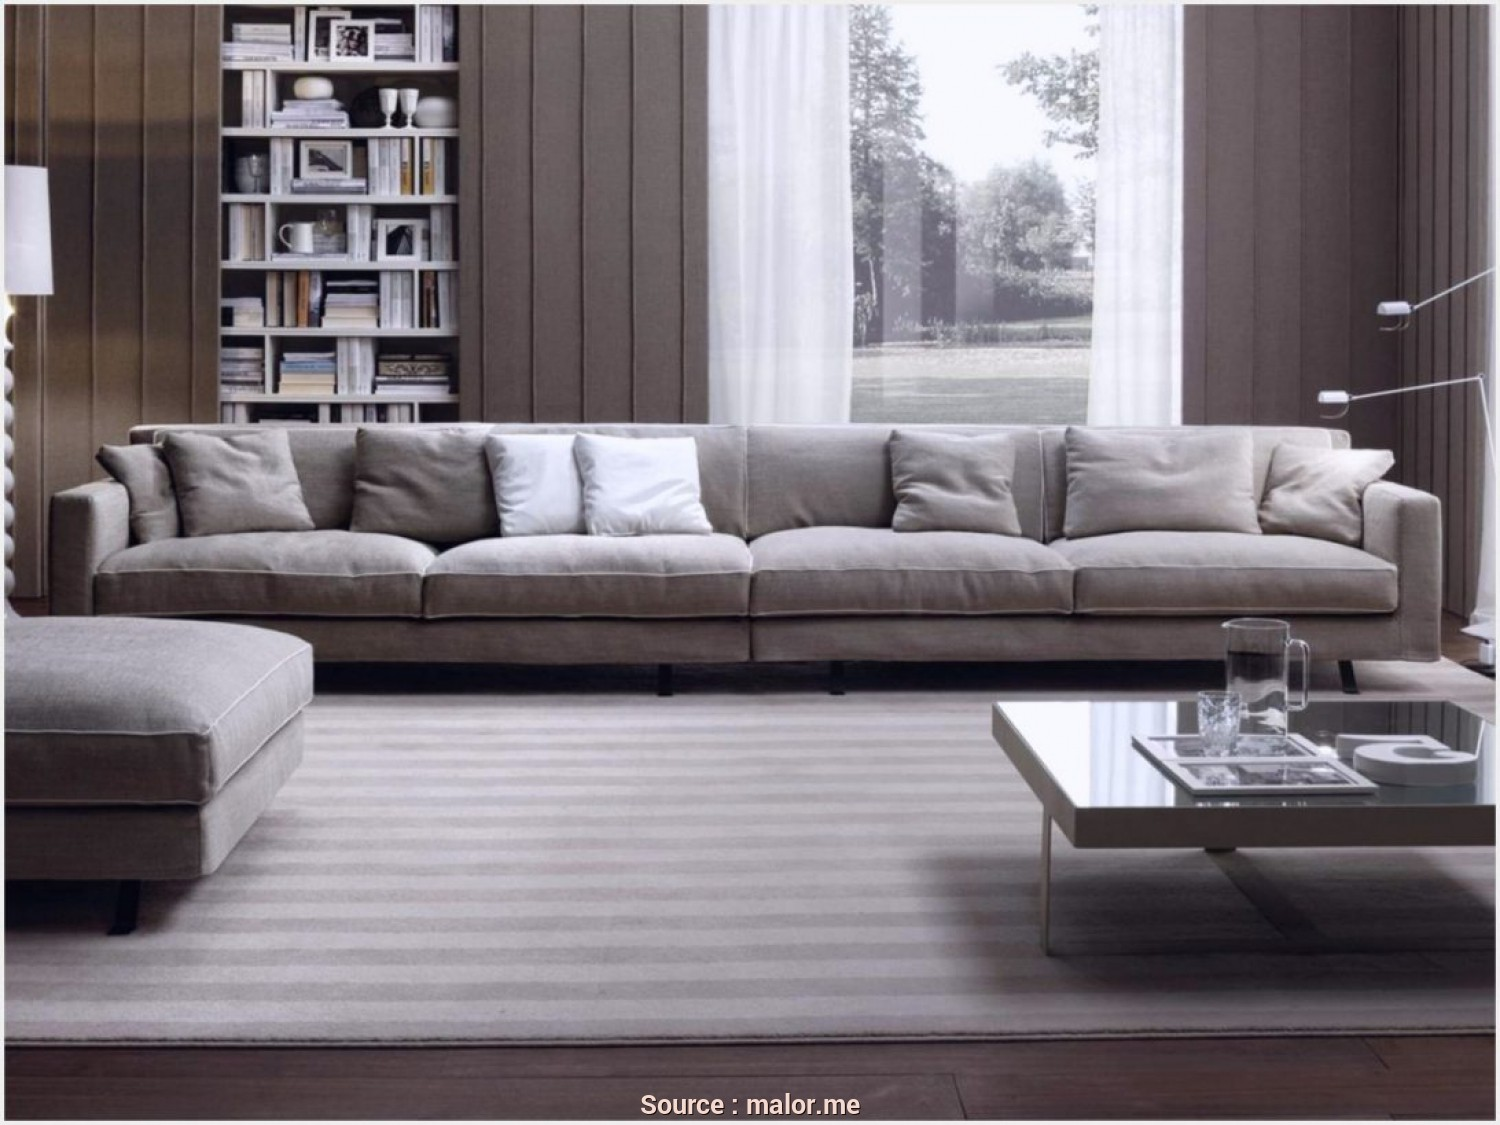 Loveable 6 Catalogo Divani E Divani By Natuzzi 2016  Jake